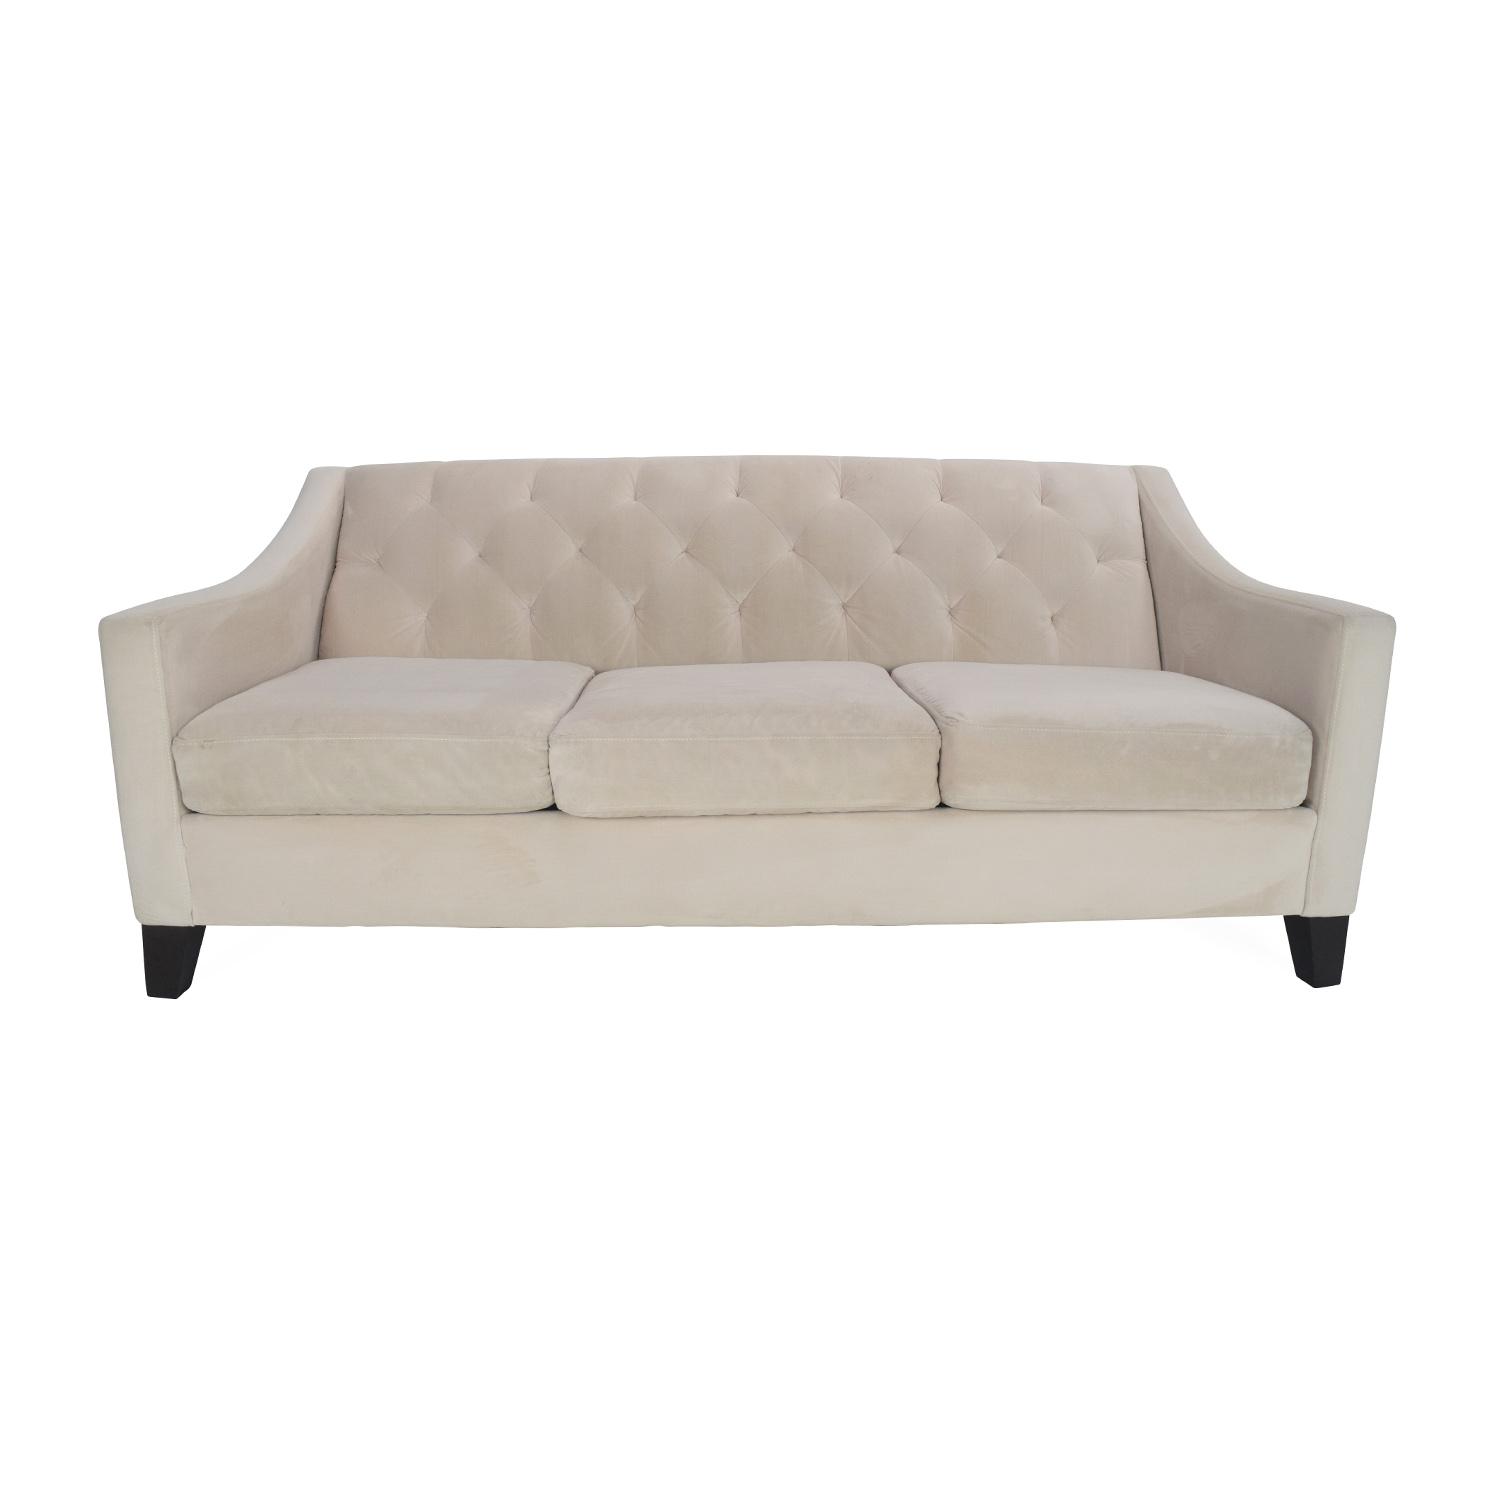 Macys Chloe Tufted Sofa Max Home Furniture